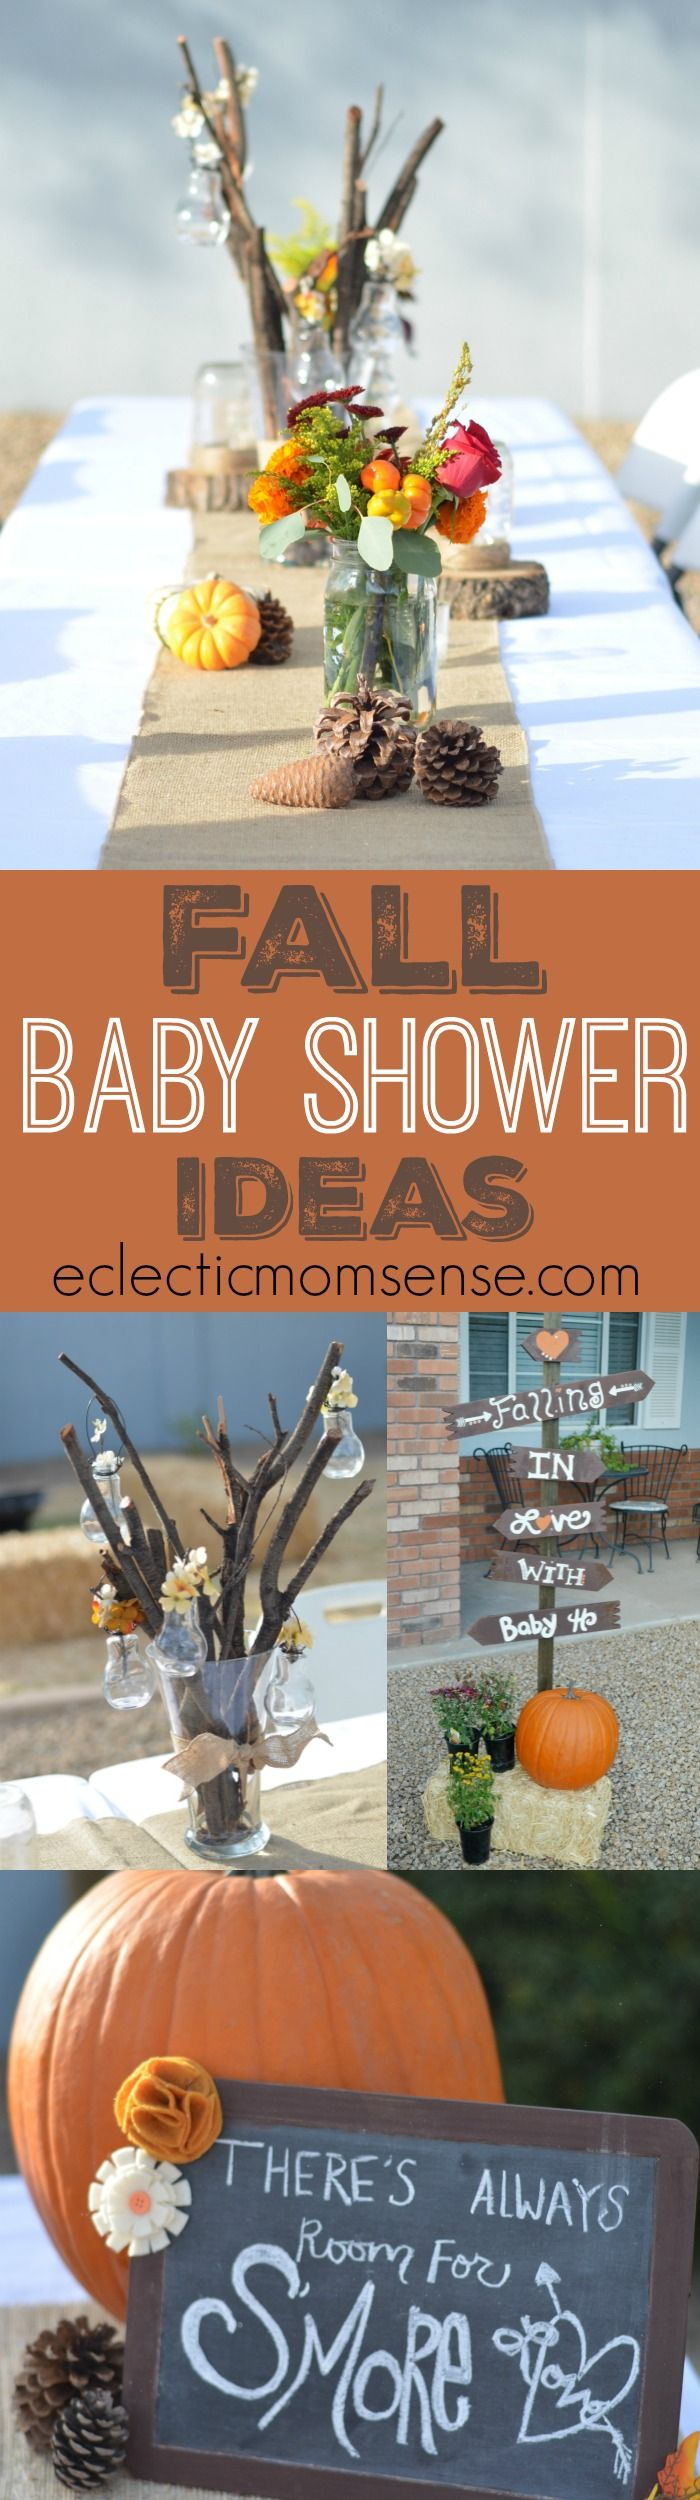 FALL BABY SHOWER IDEAS- Adorable autumn inspired Fall in Love with baby themed shower.